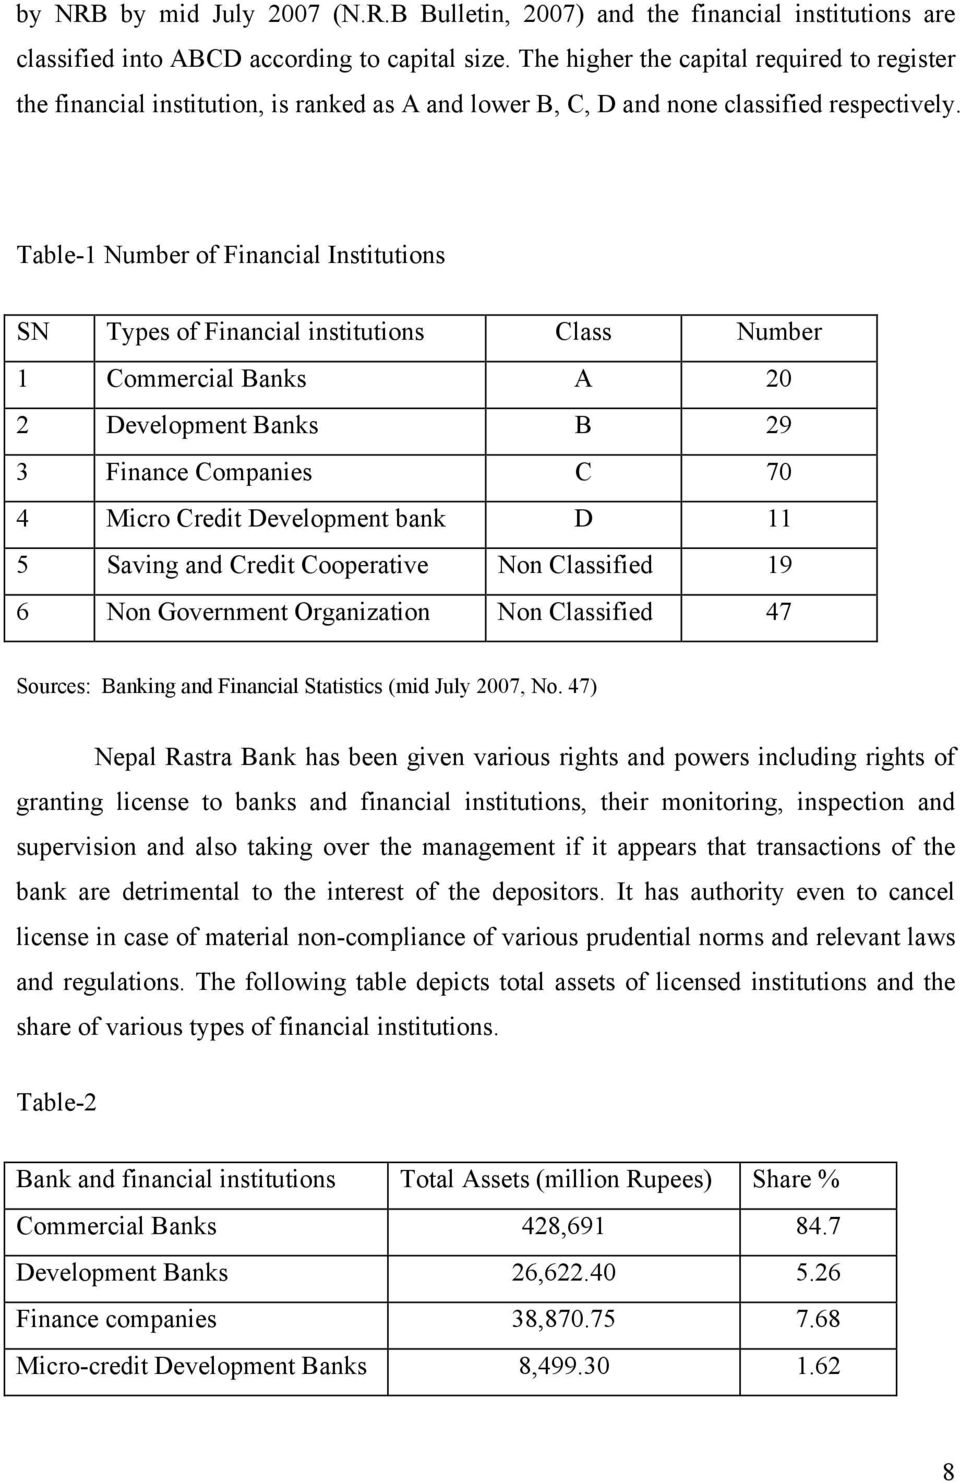 Table-1 Number of Financial Institutions SN Types of Financial institutions Class Number 1 Commercial Banks A 20 2 Development Banks B 29 3 Finance Companies C 70 4 Micro Credit Development bank D 11